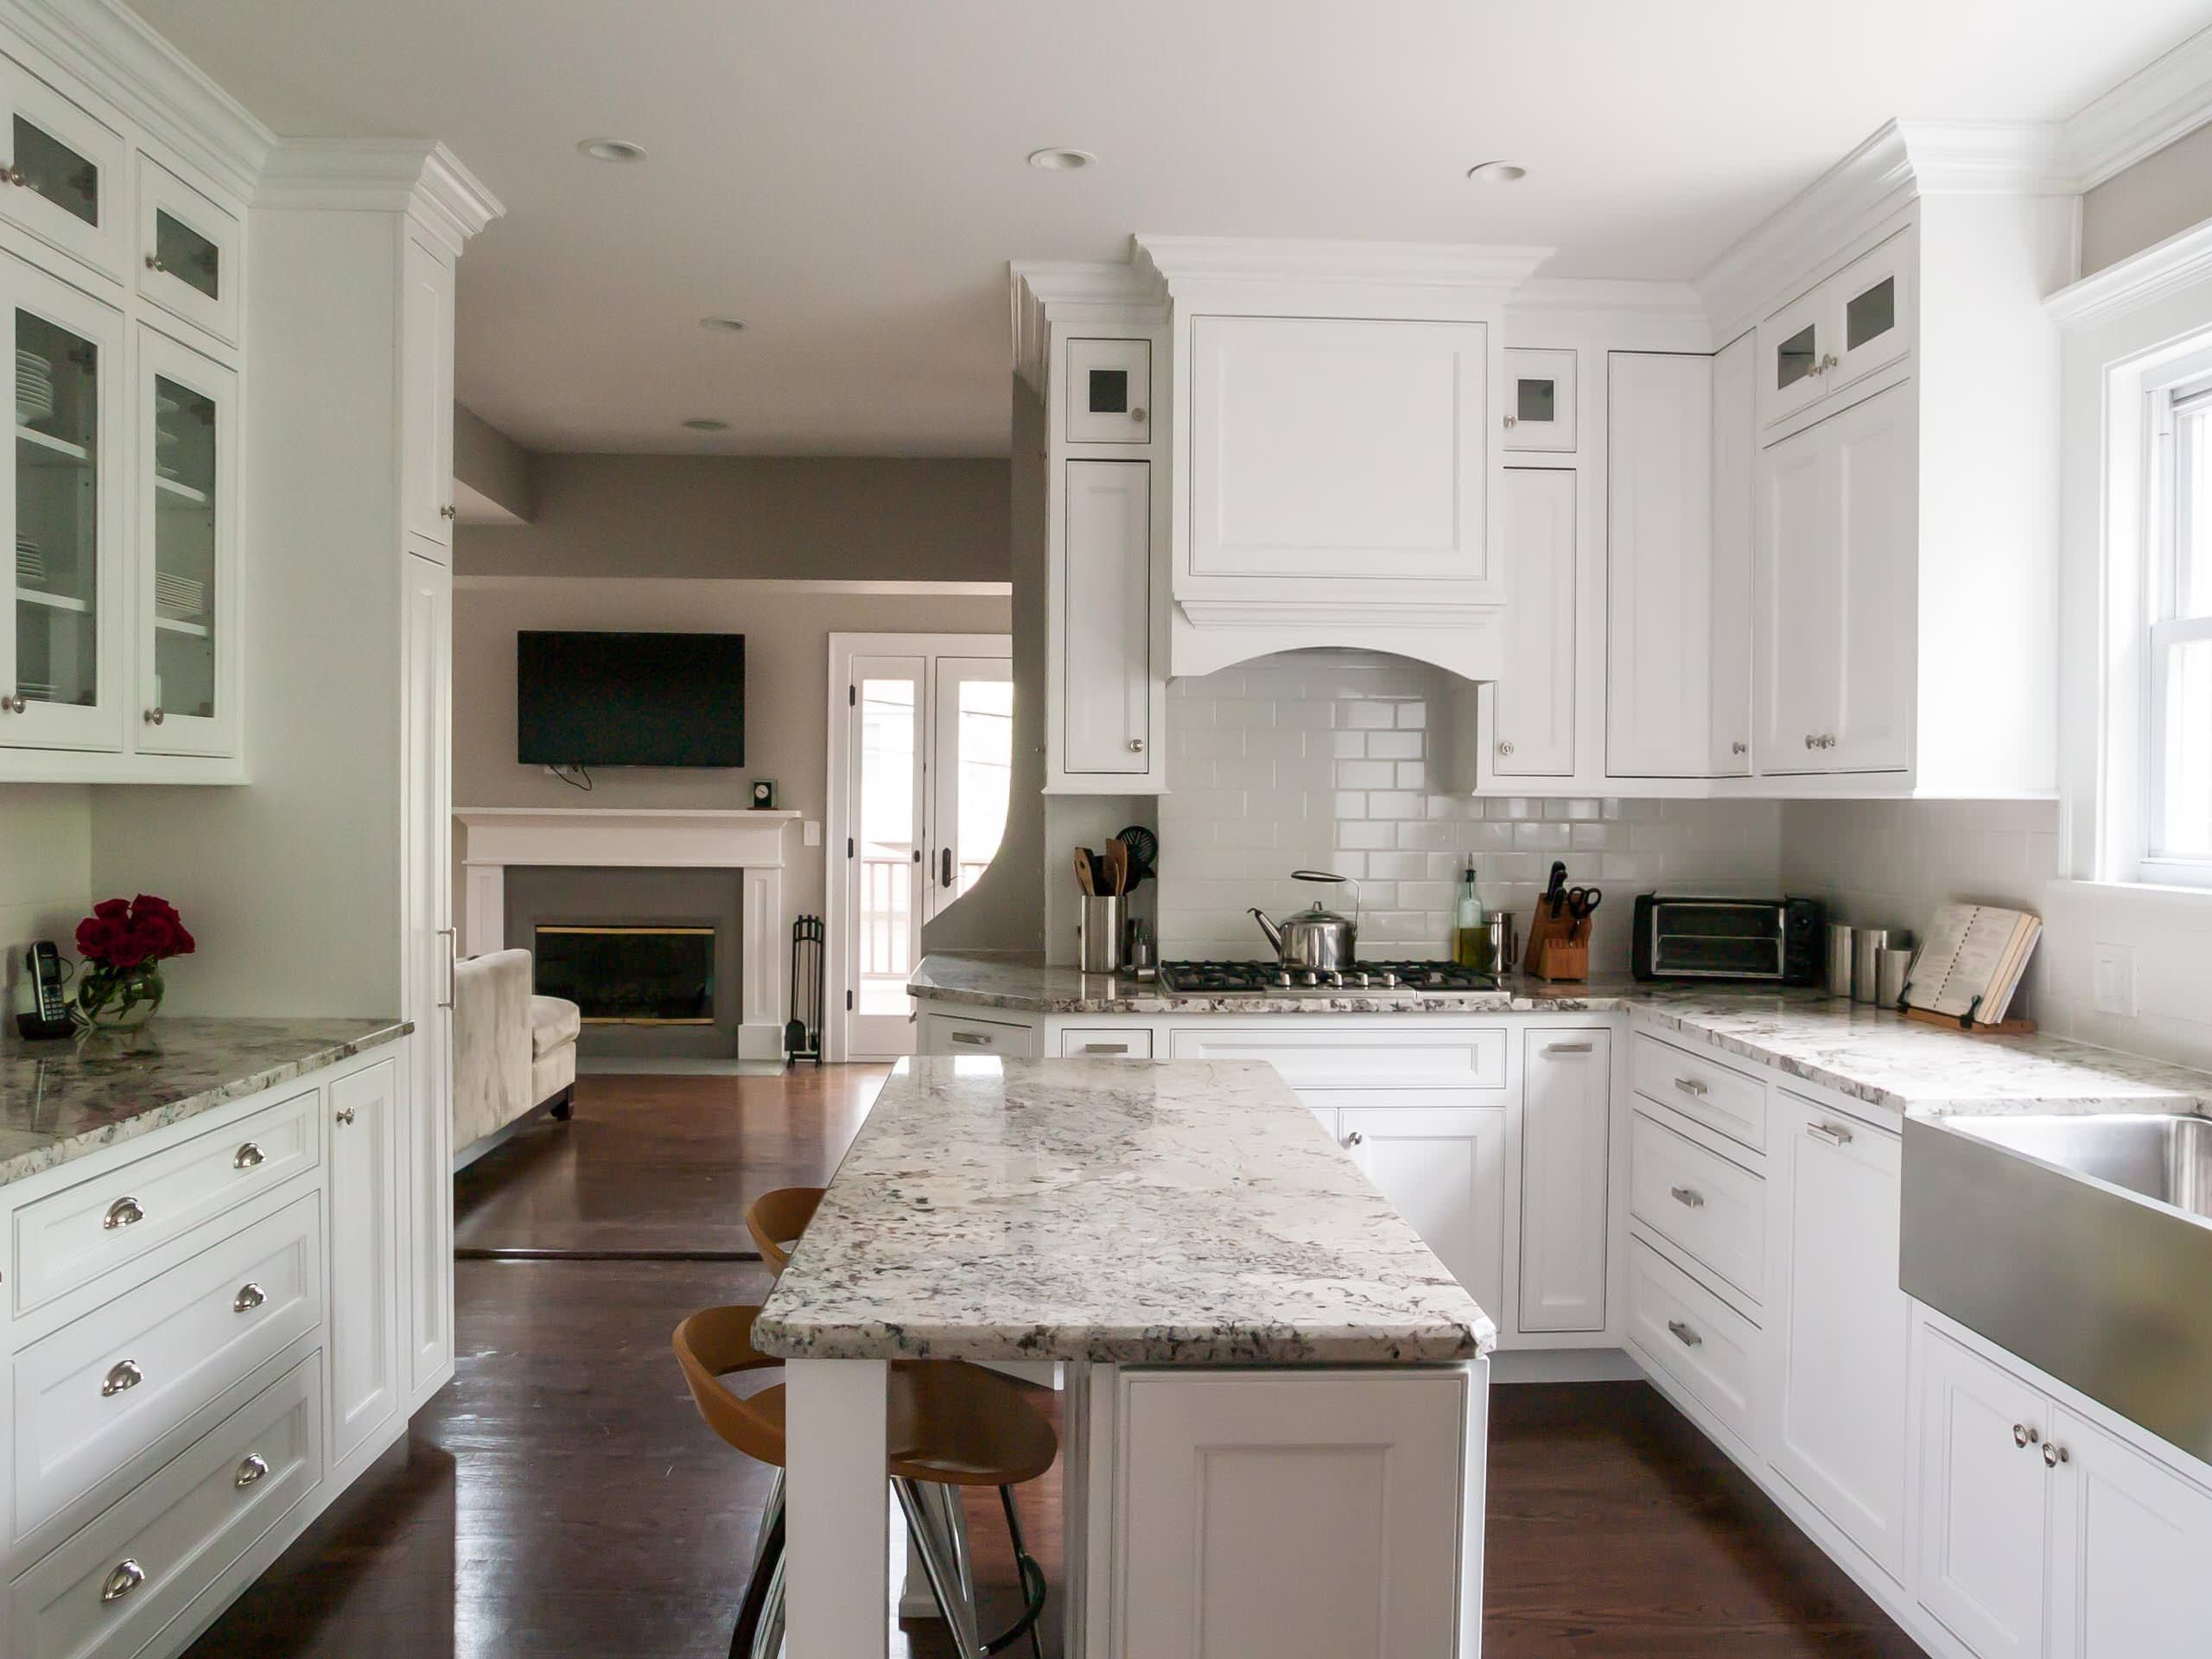 White Silver Granite Countertop : kitchen cabinet hardware white kitchen cabinets white kitchens ...